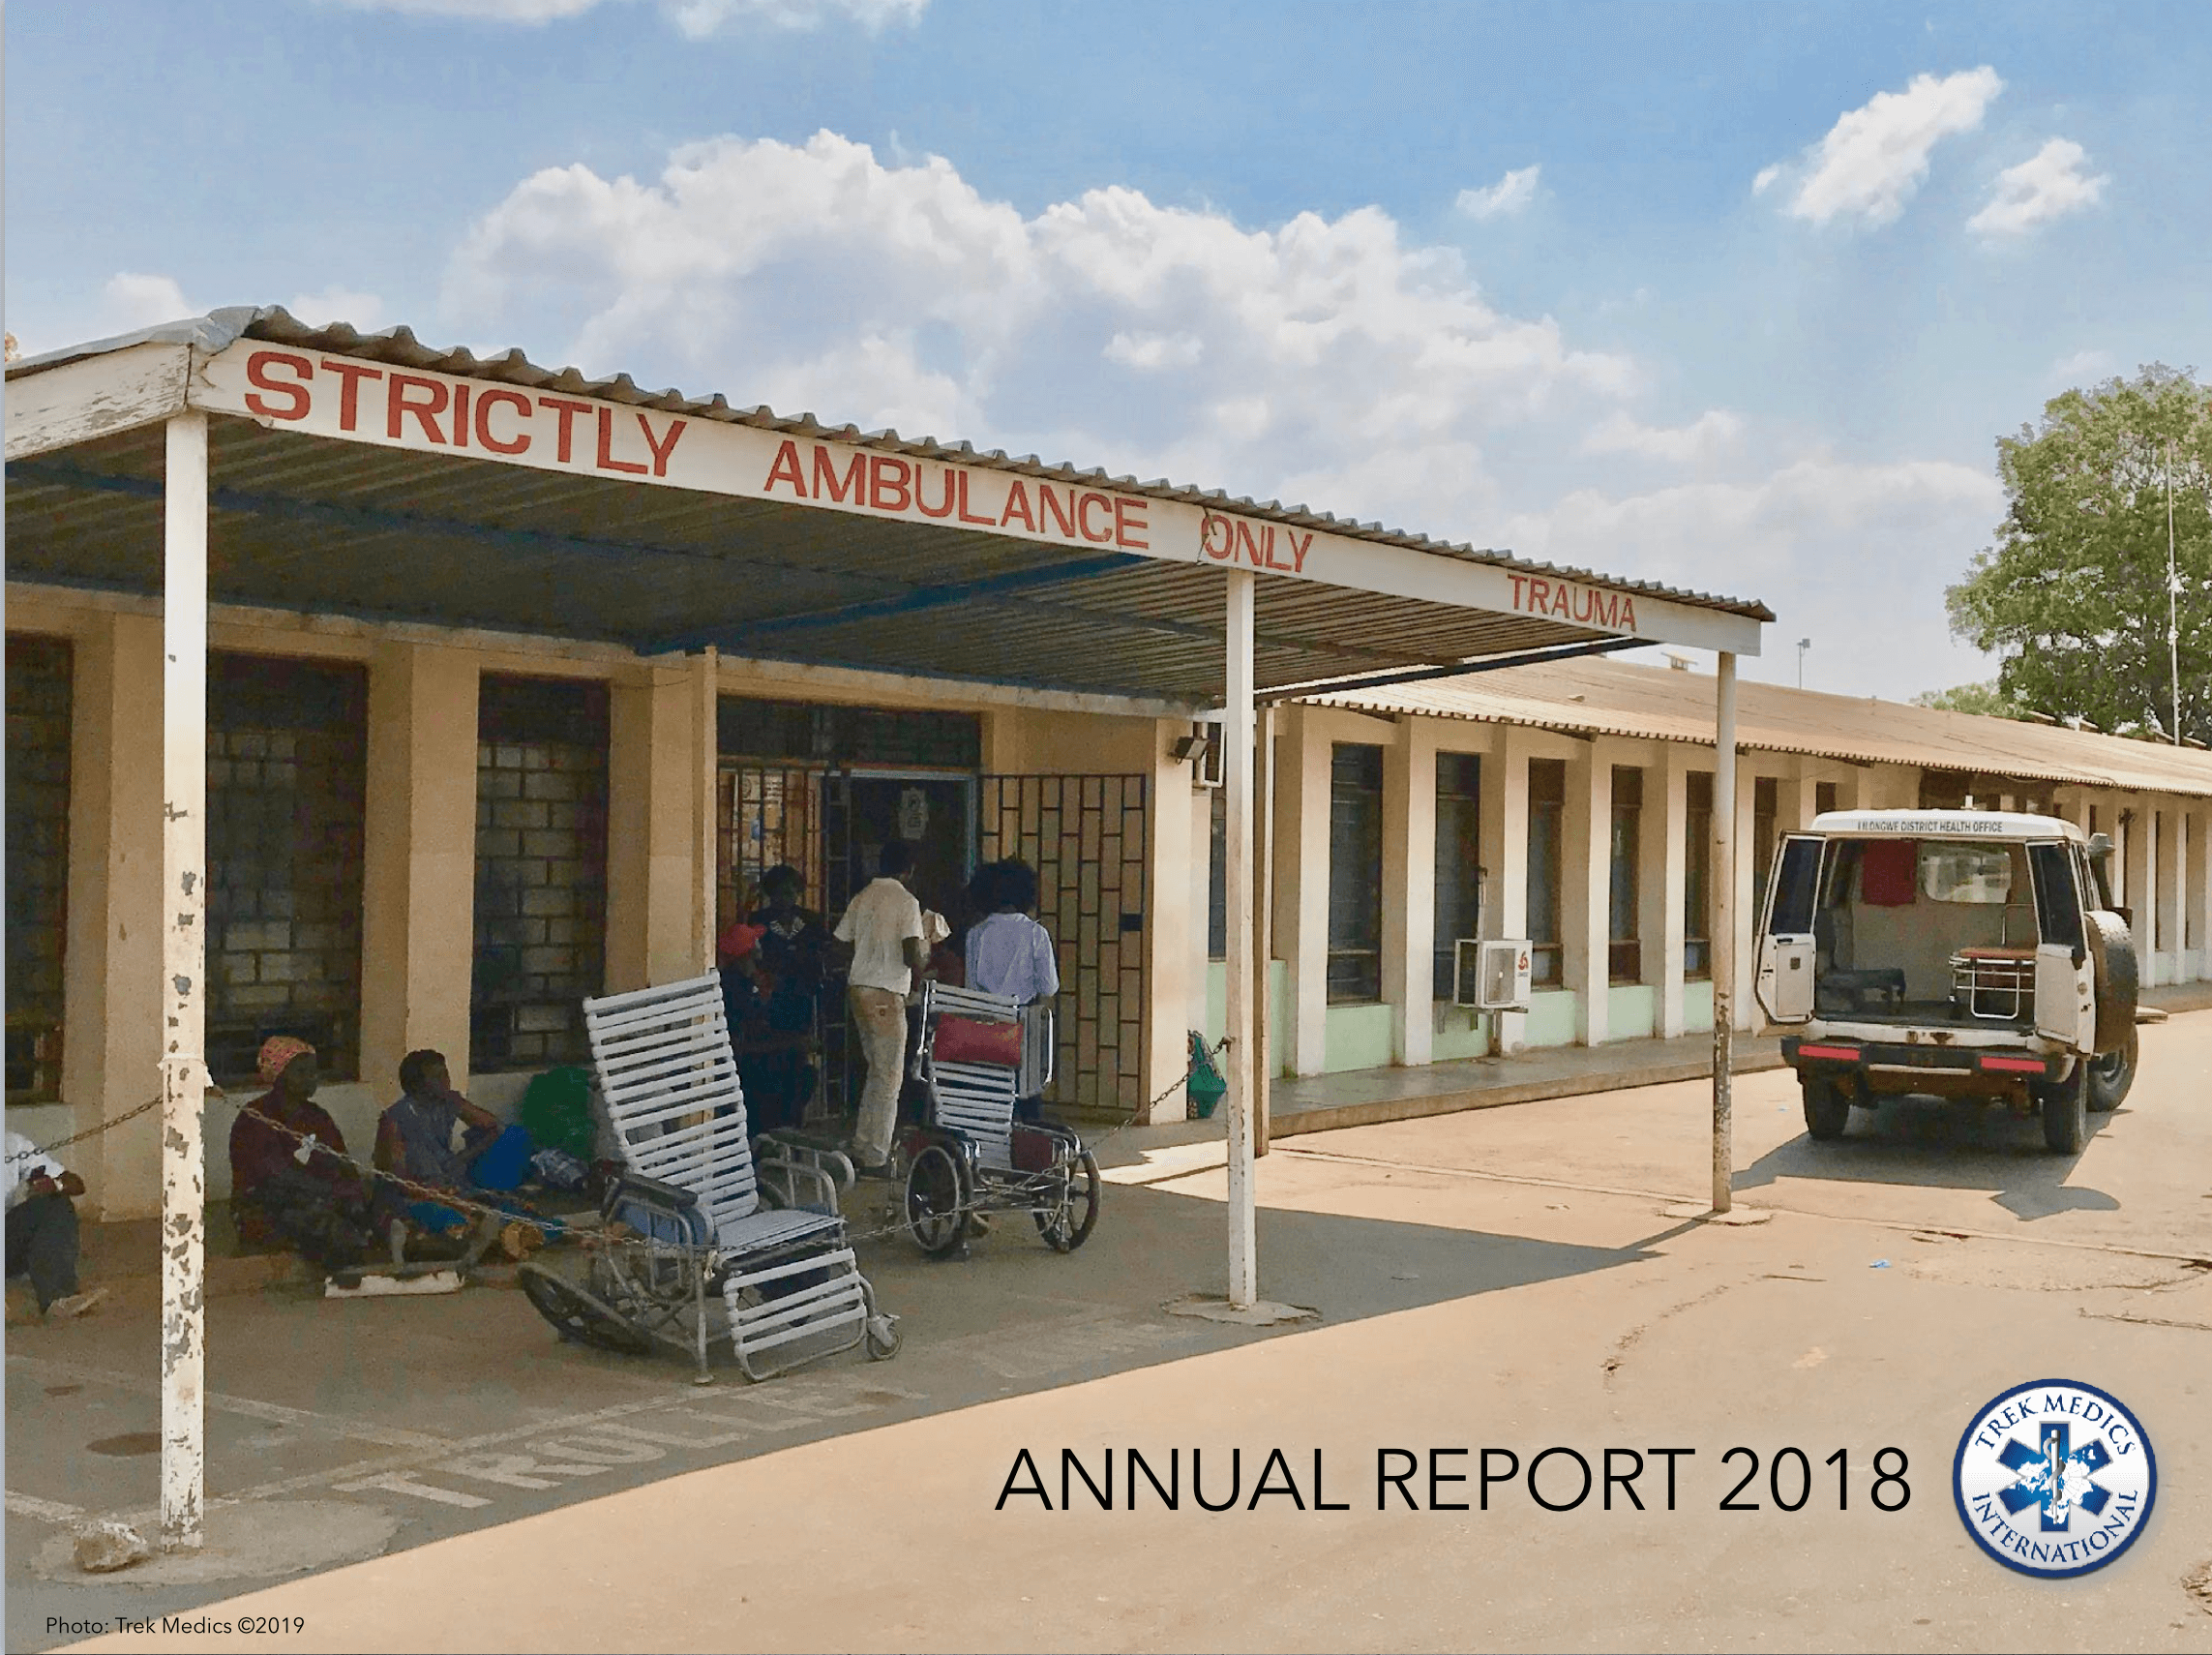 Trek Medics 2018 Annual Report Cover Image